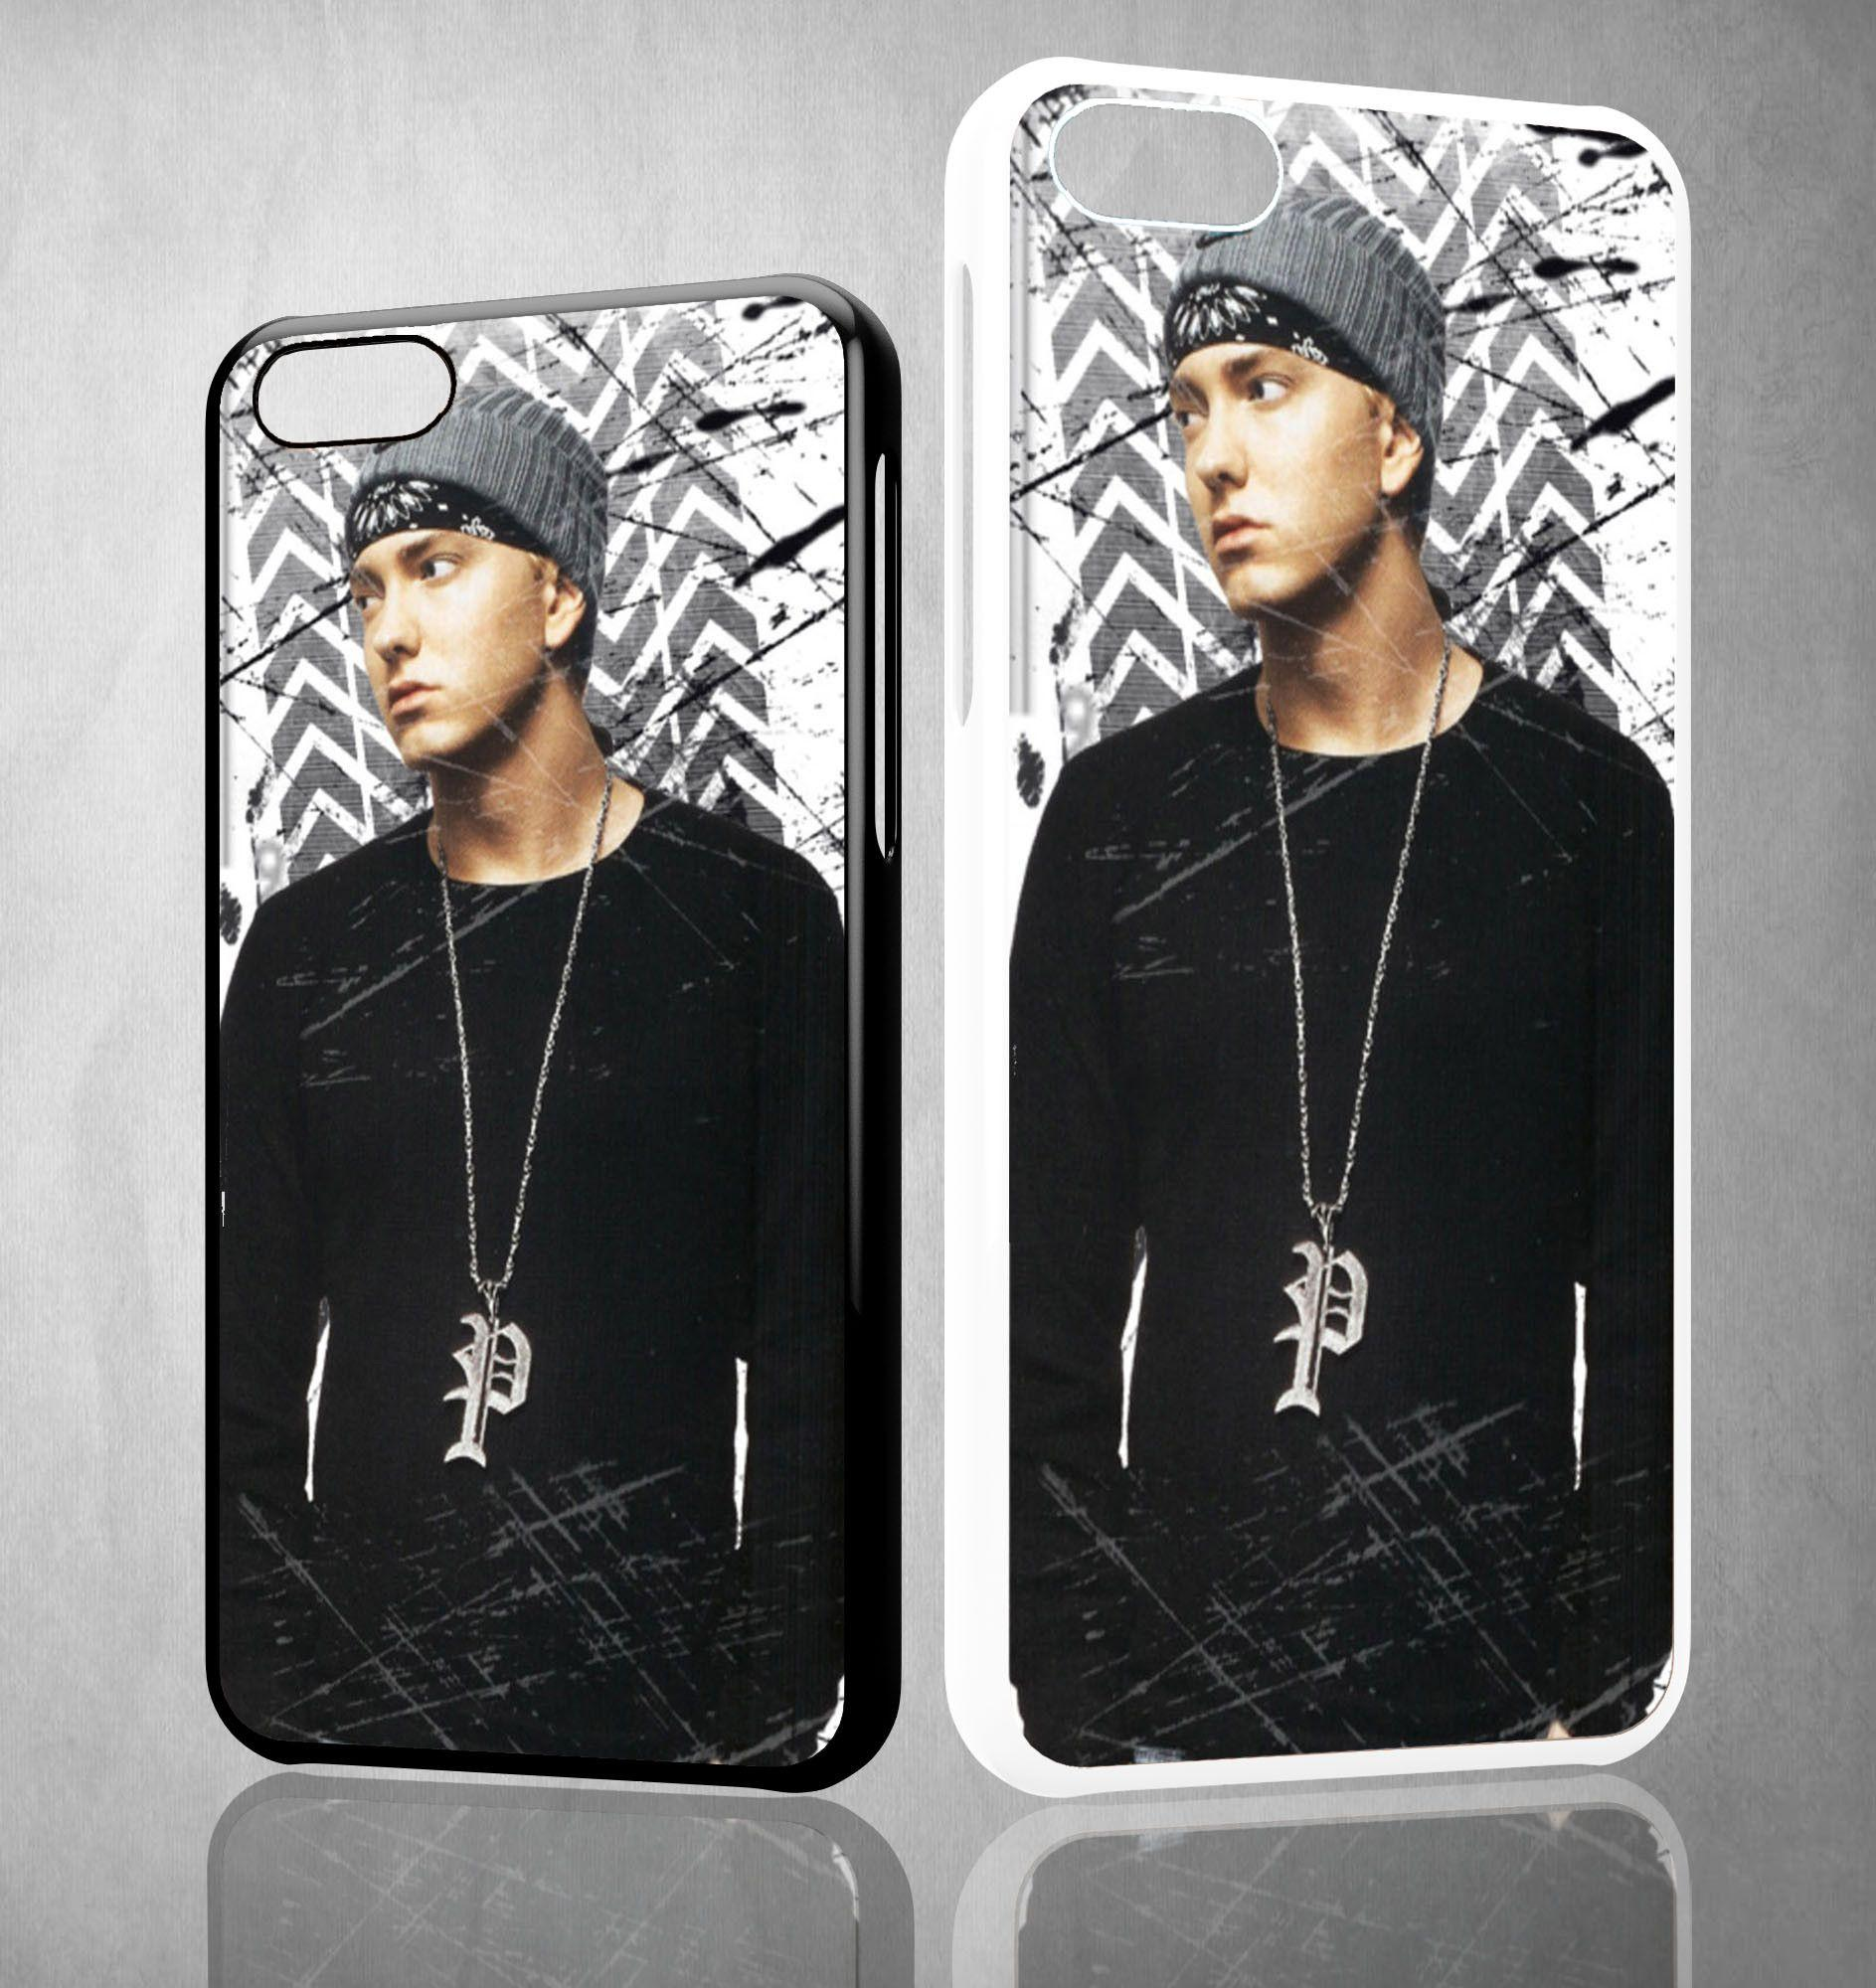 eminem wallpaper X0295 iPhone 4S 5S 5C 6 6 Plus 6S 6S Plus, iPod 4 ...